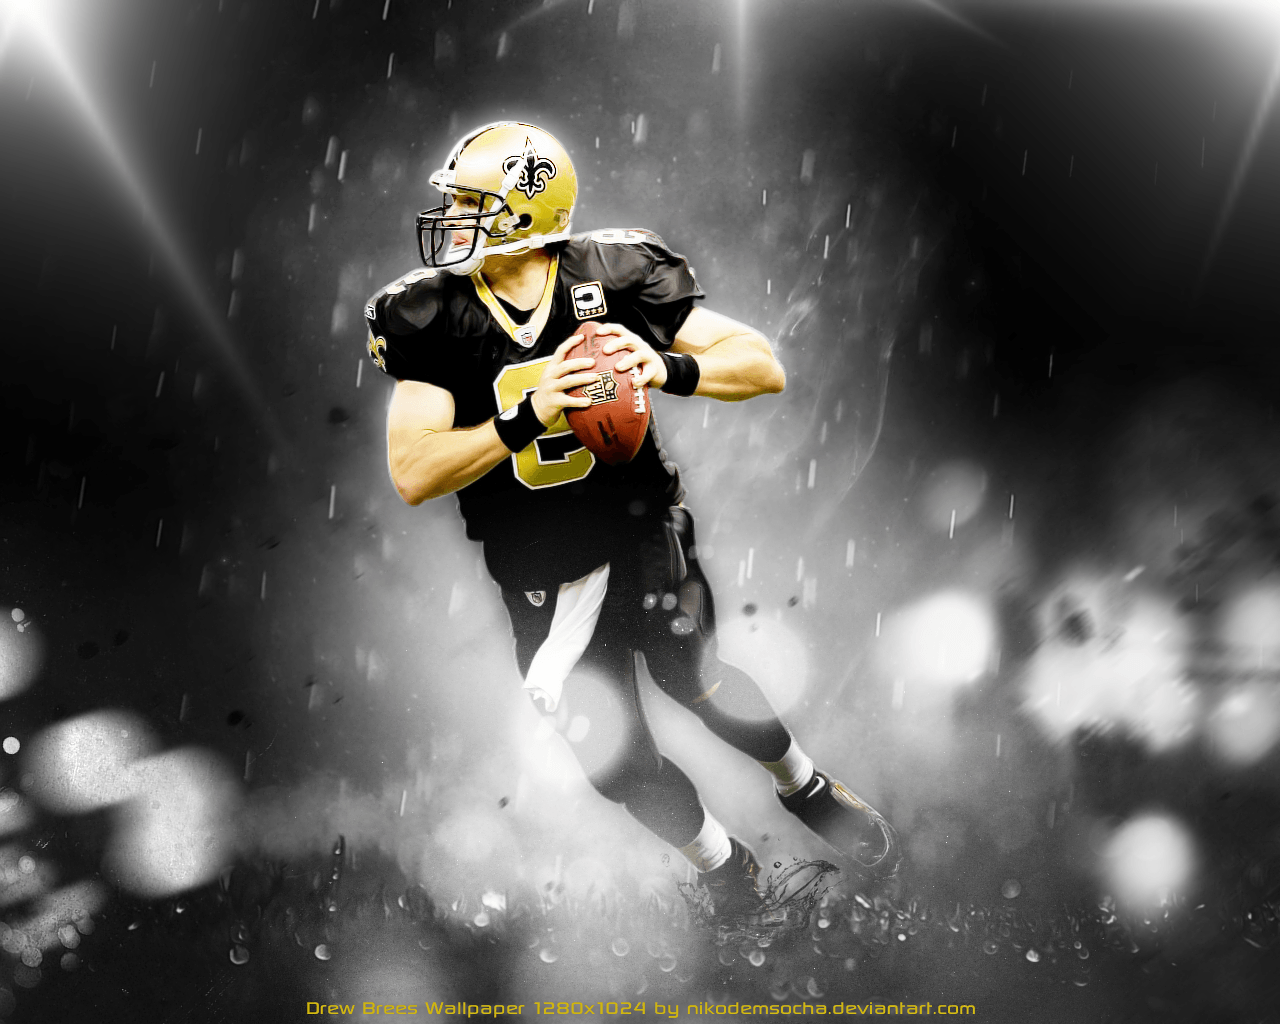 45 Nfl Football Players Wallpaper On Wallpapersafari: Drew Brees Wallpapers